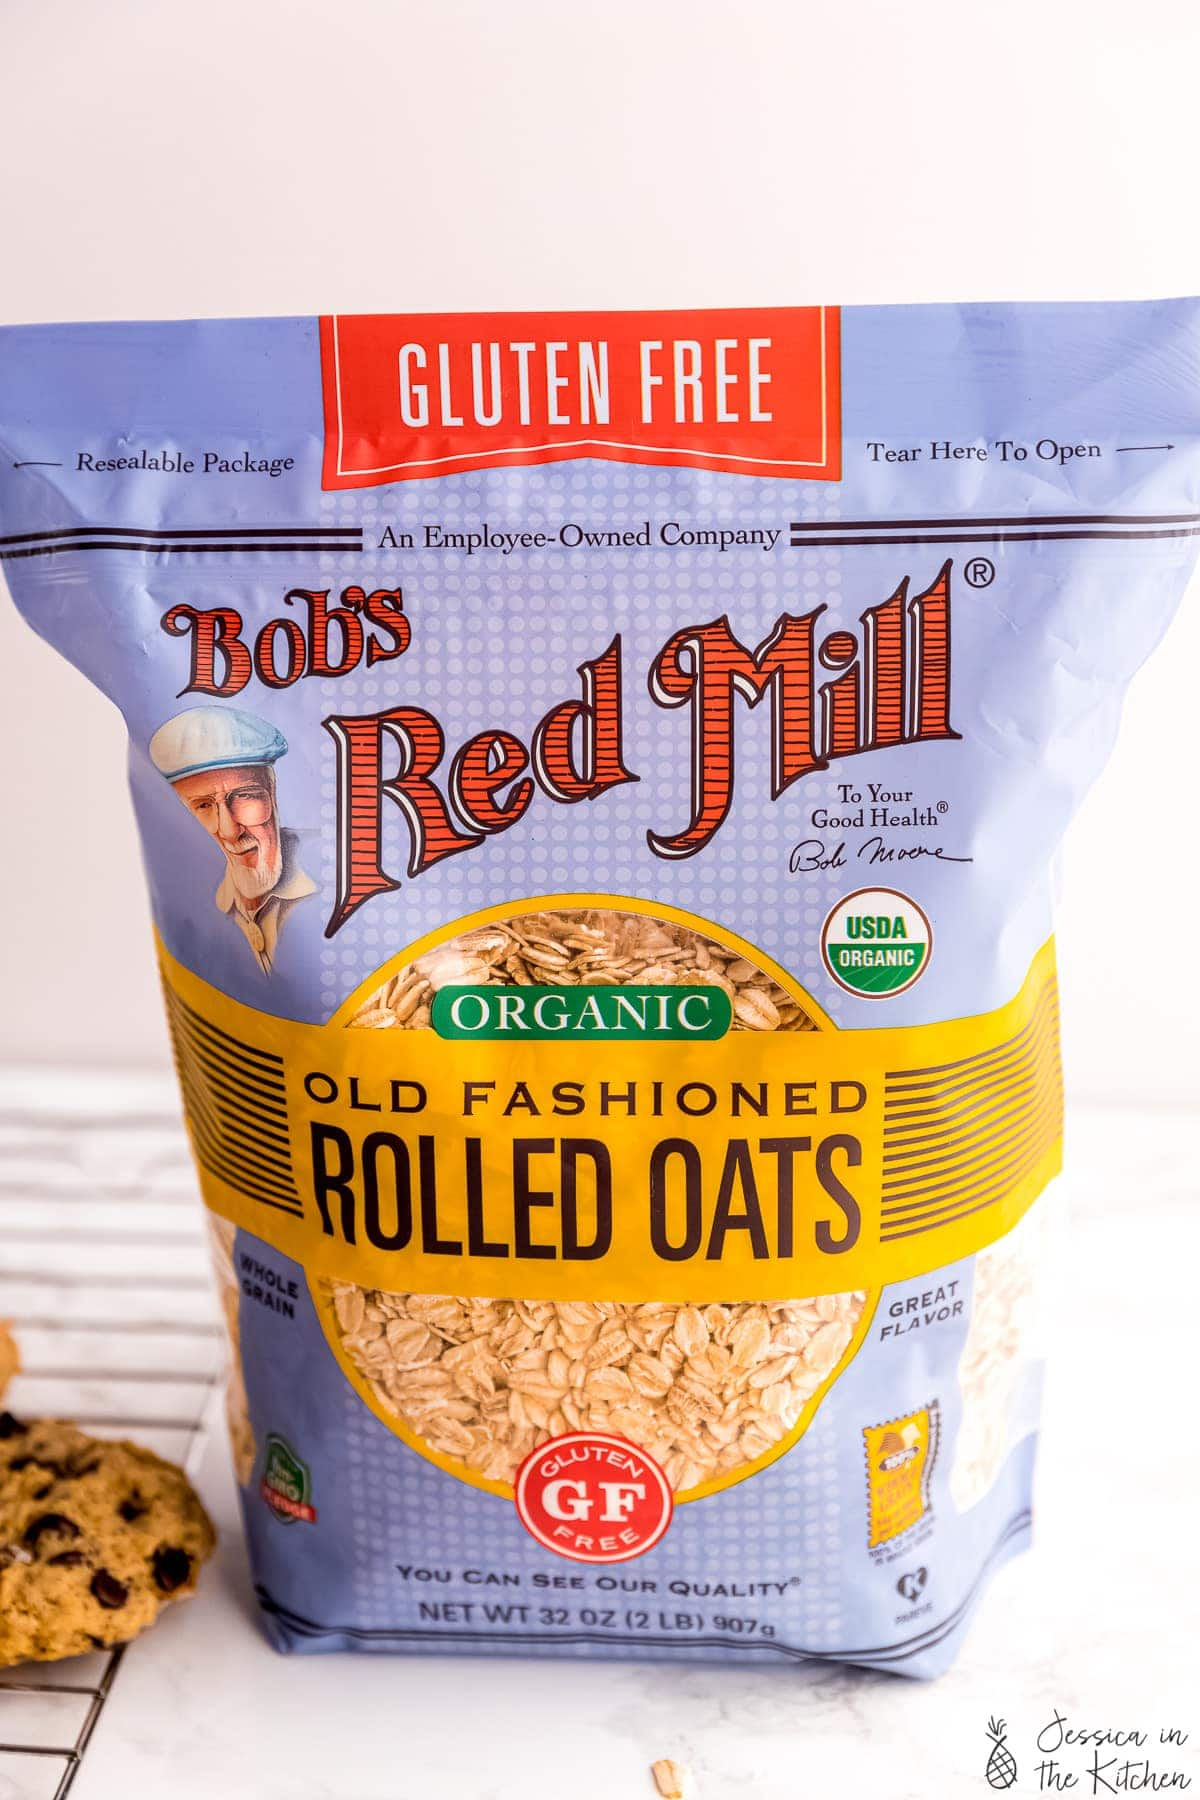 A pack of gluten free rolled oats.